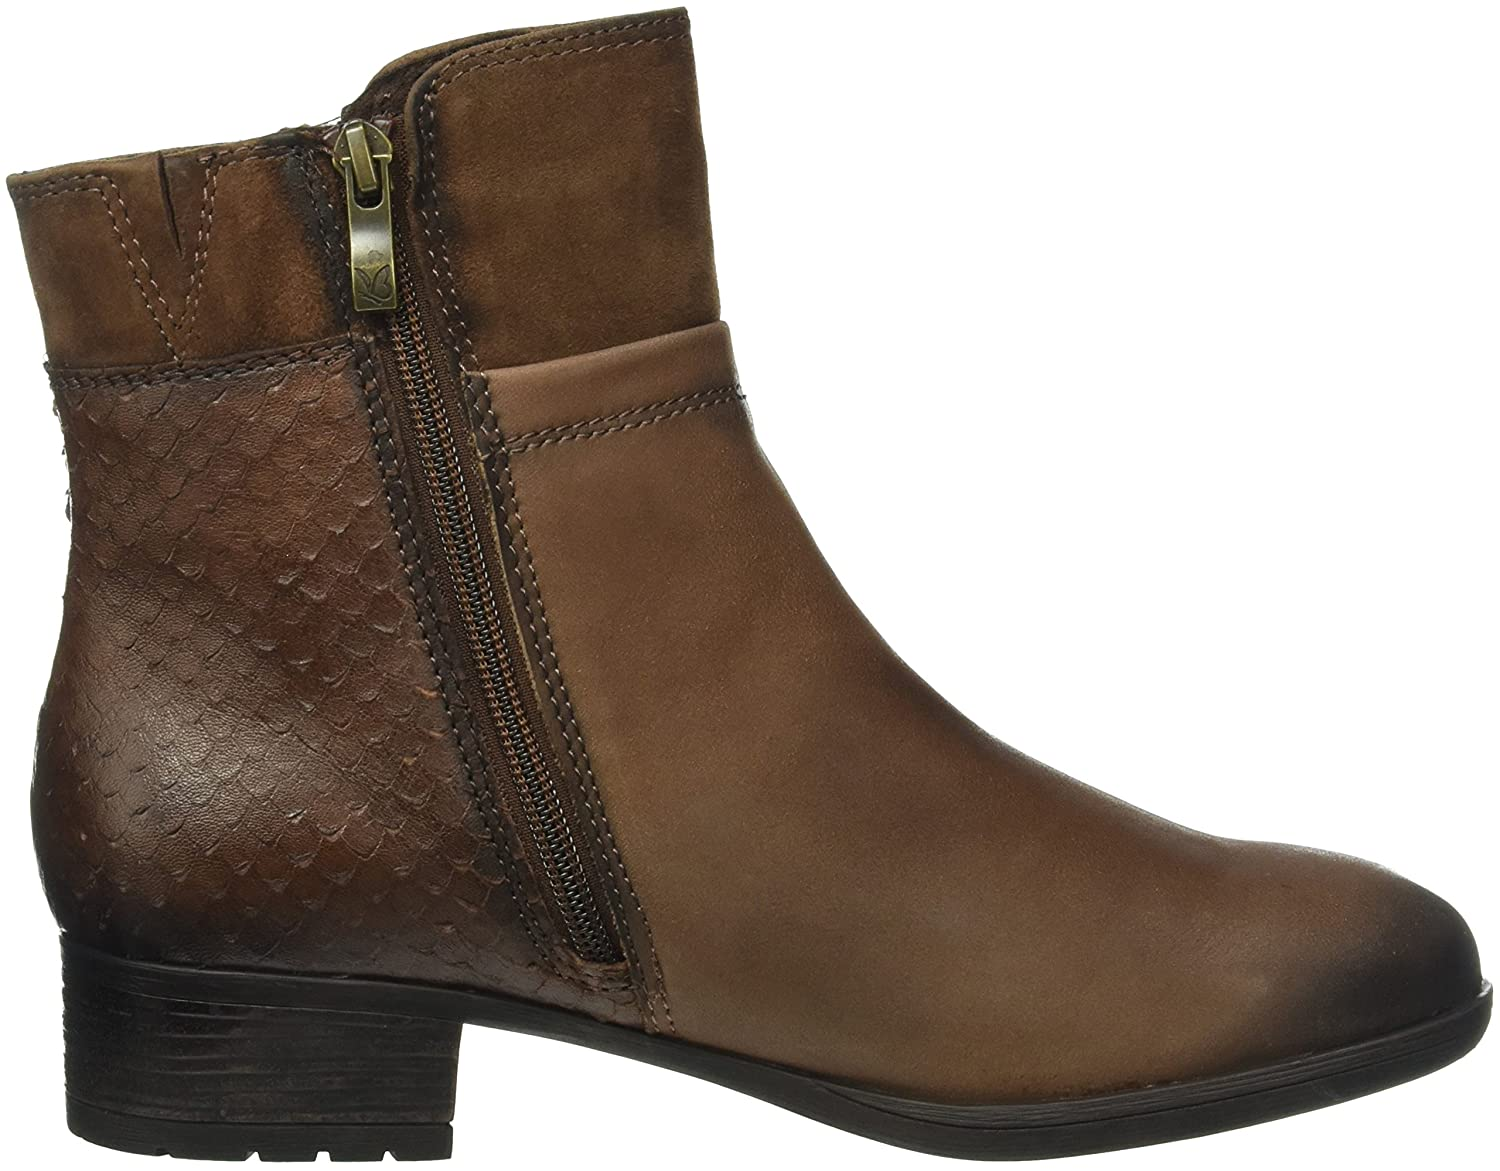 25315 caprice femmes & eacute; bottines b01e17p85o parent